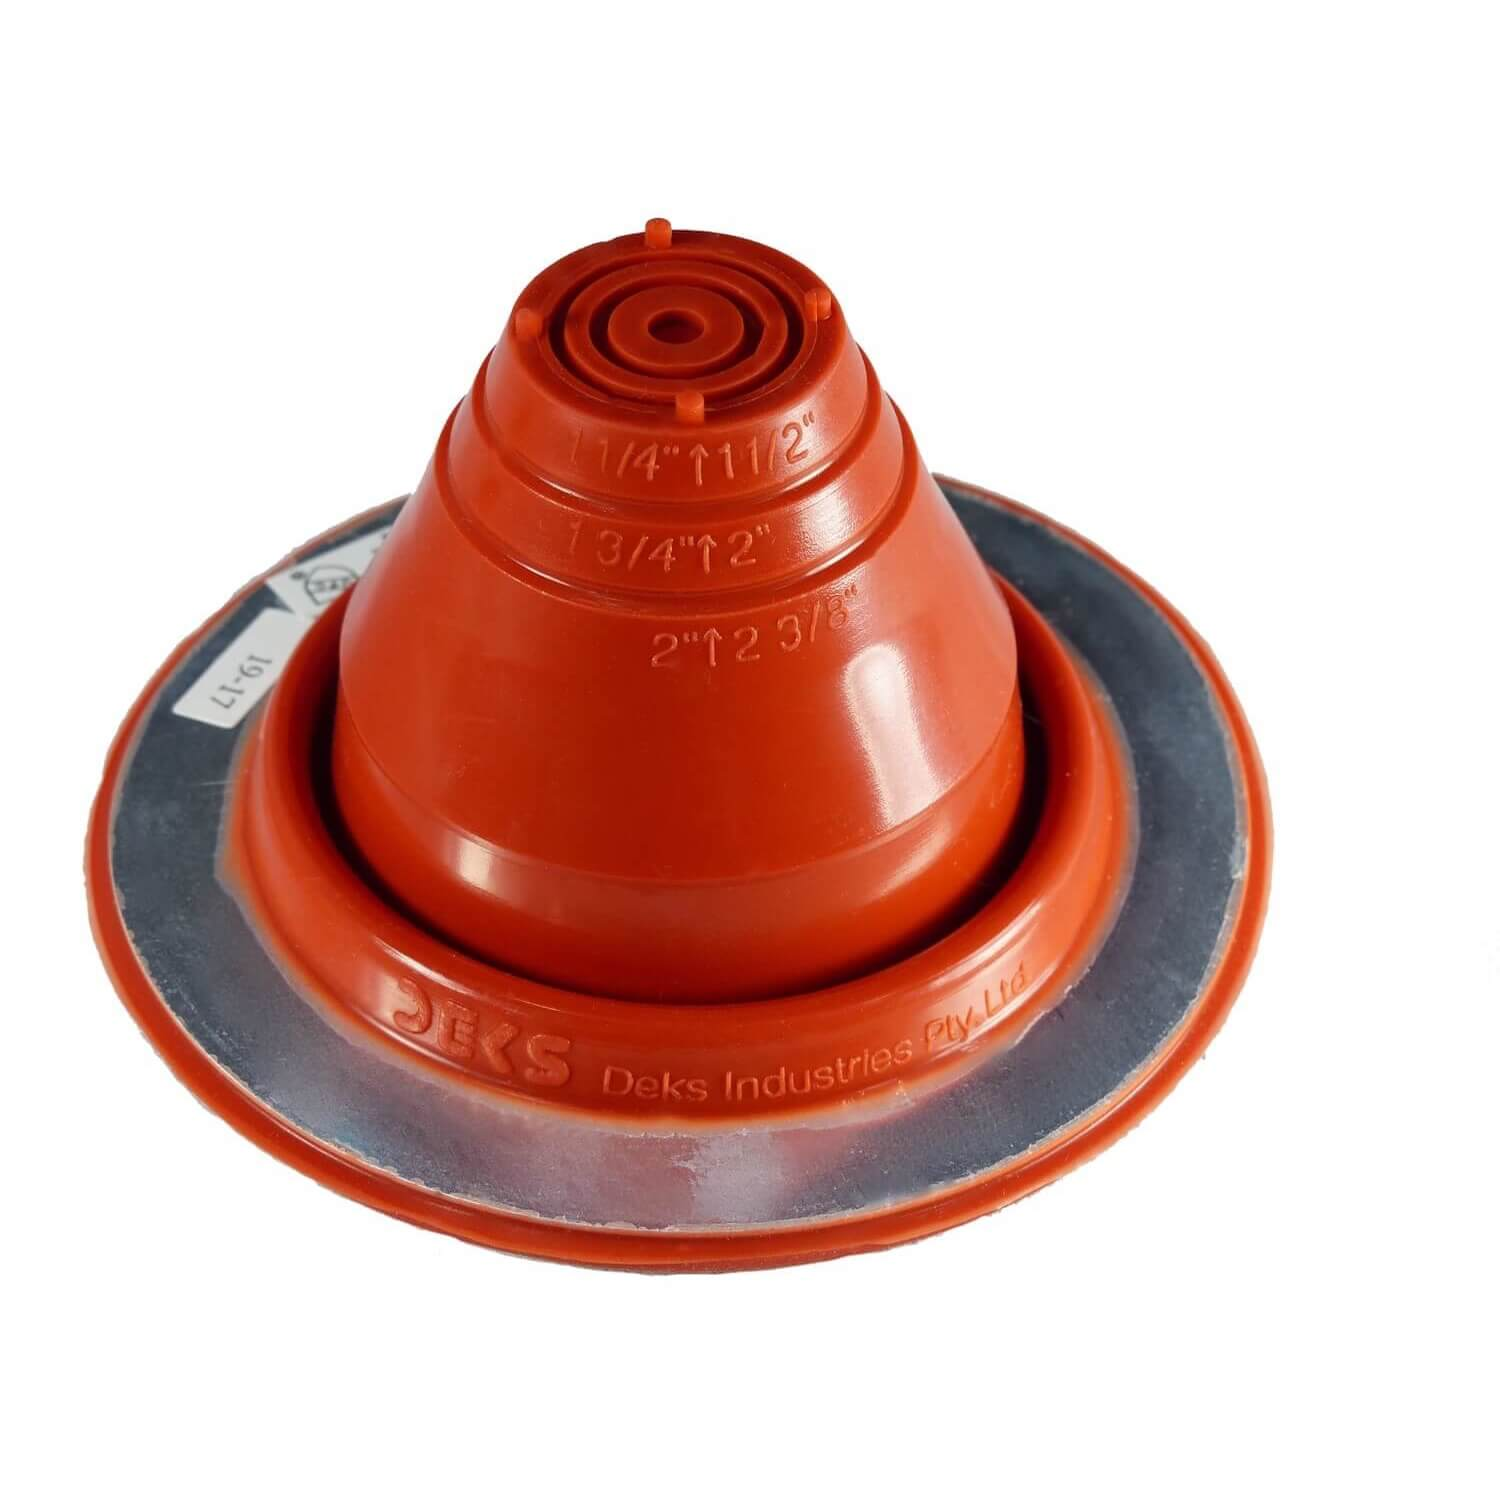 1 1 4 Quot 2 1 2 Quot Red Round High Temp Silicone Flexible